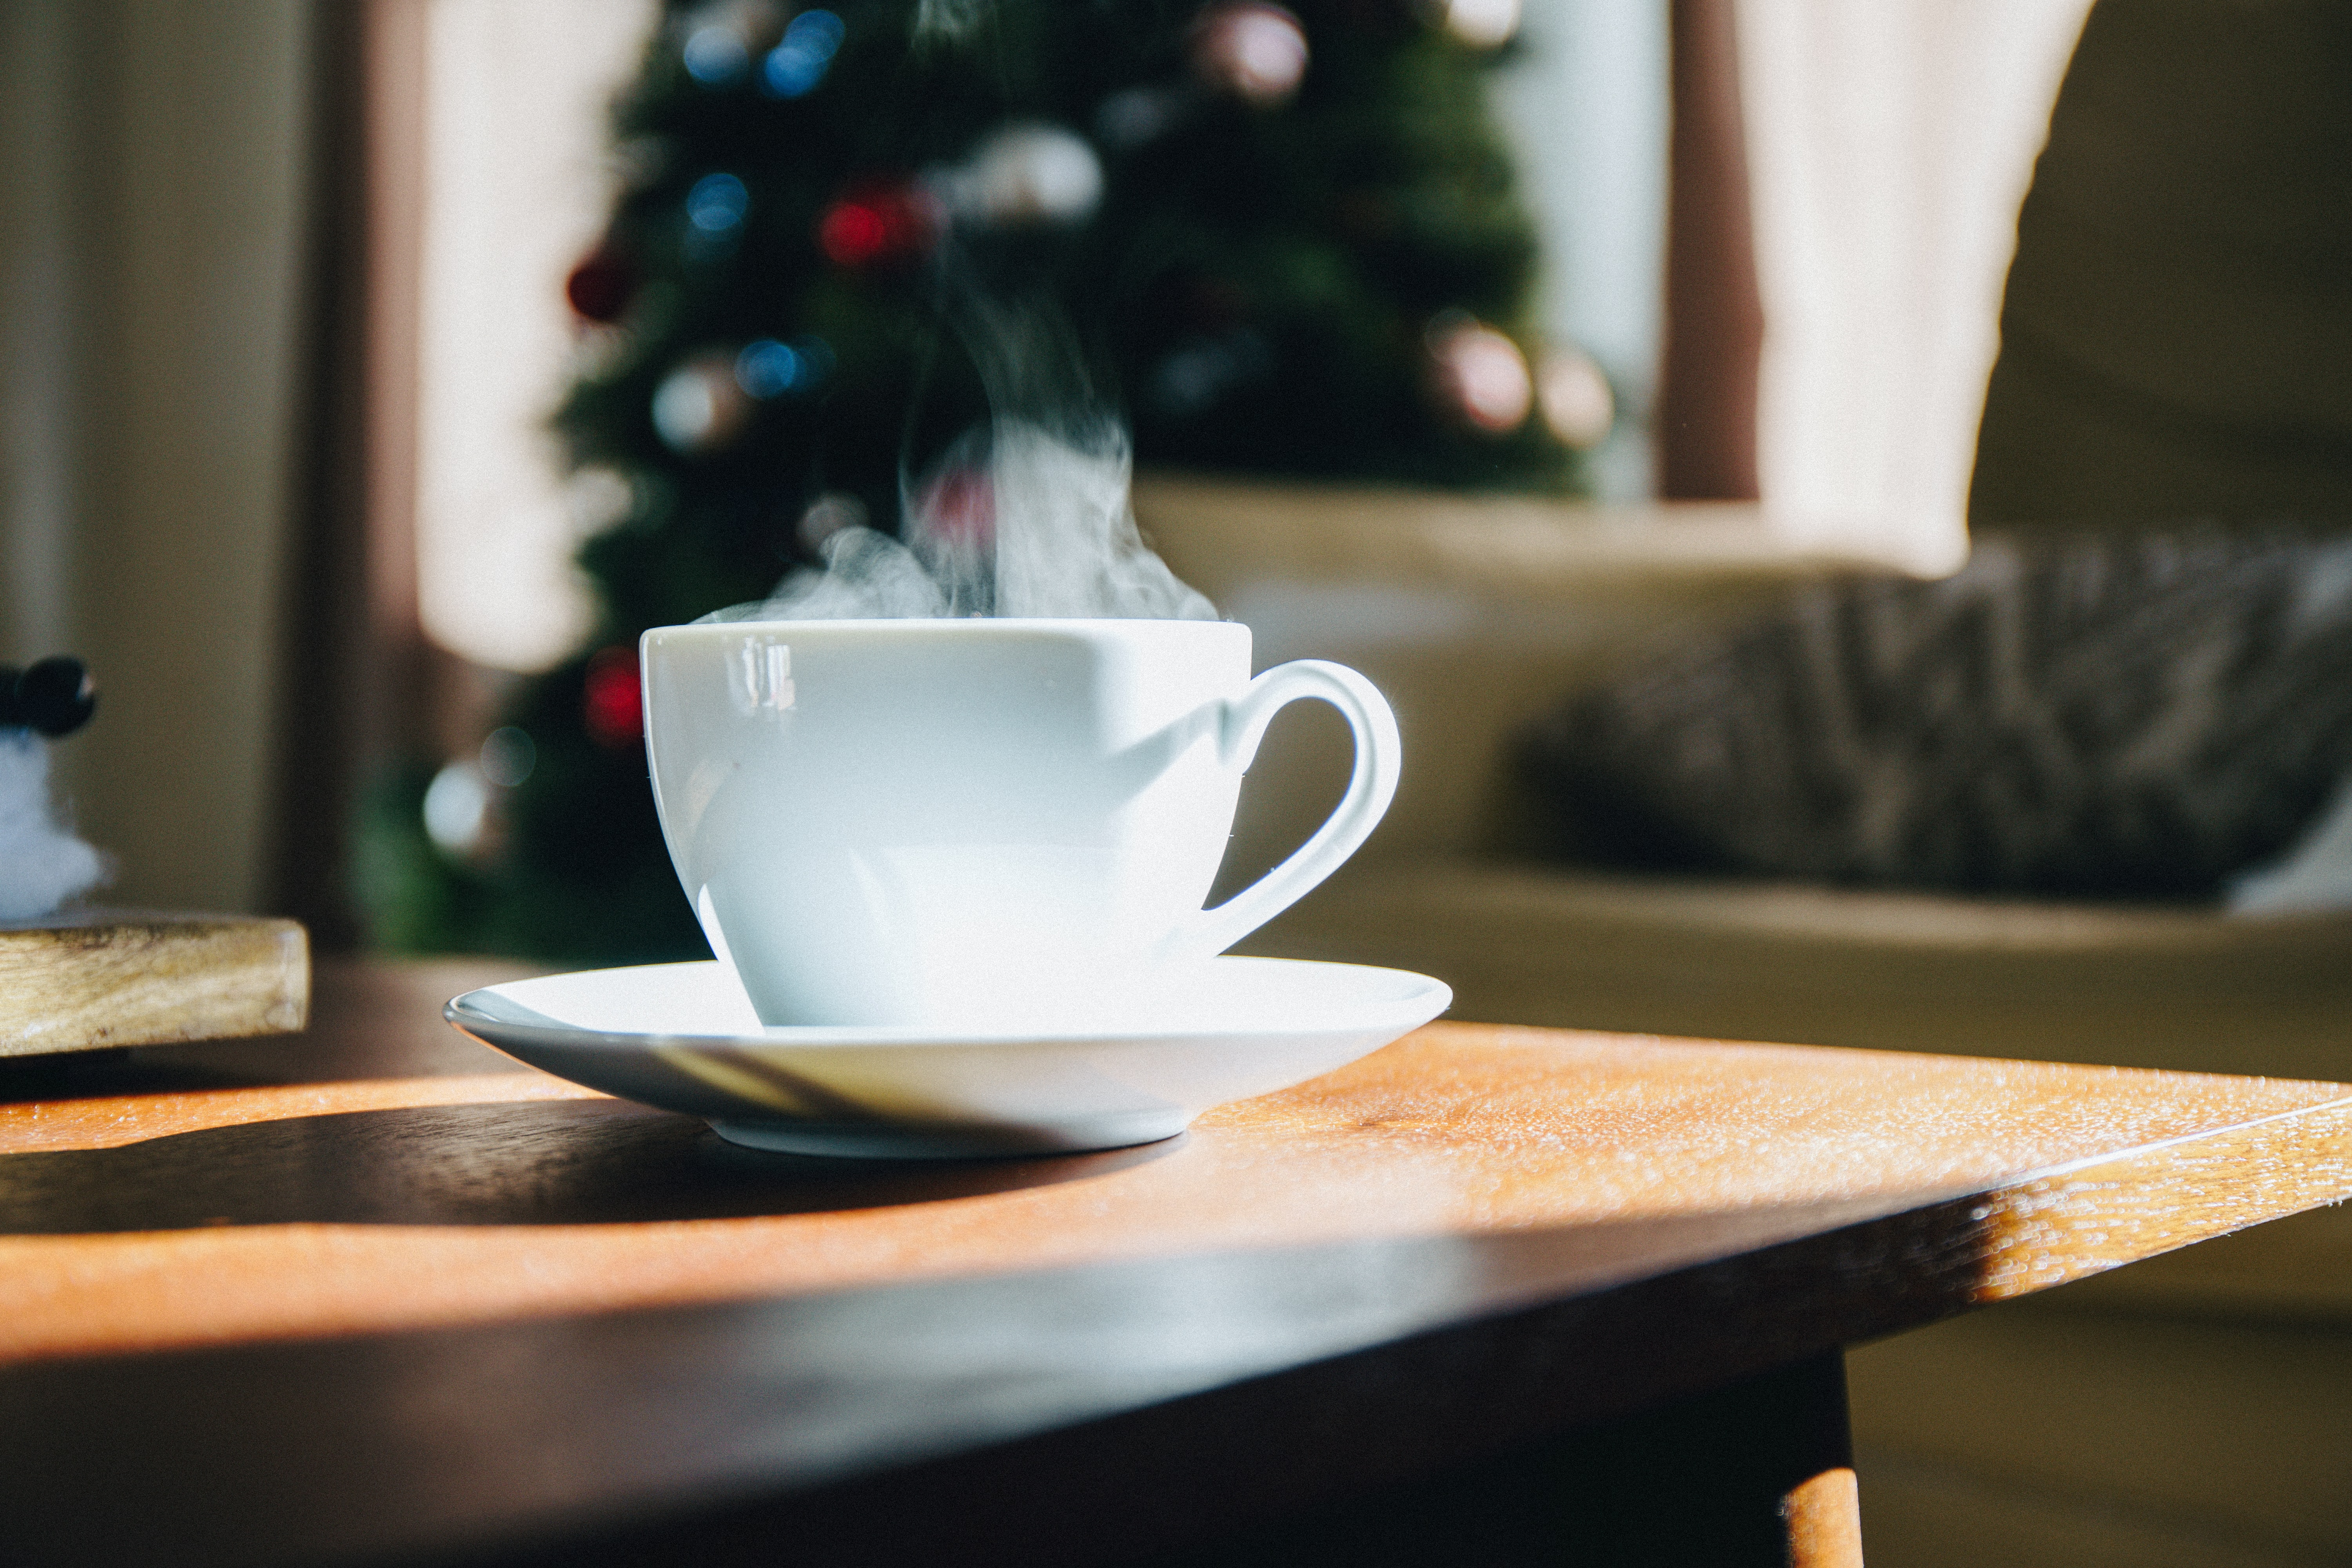 A steaming hot cup of coffee at Christmastime in Chicago